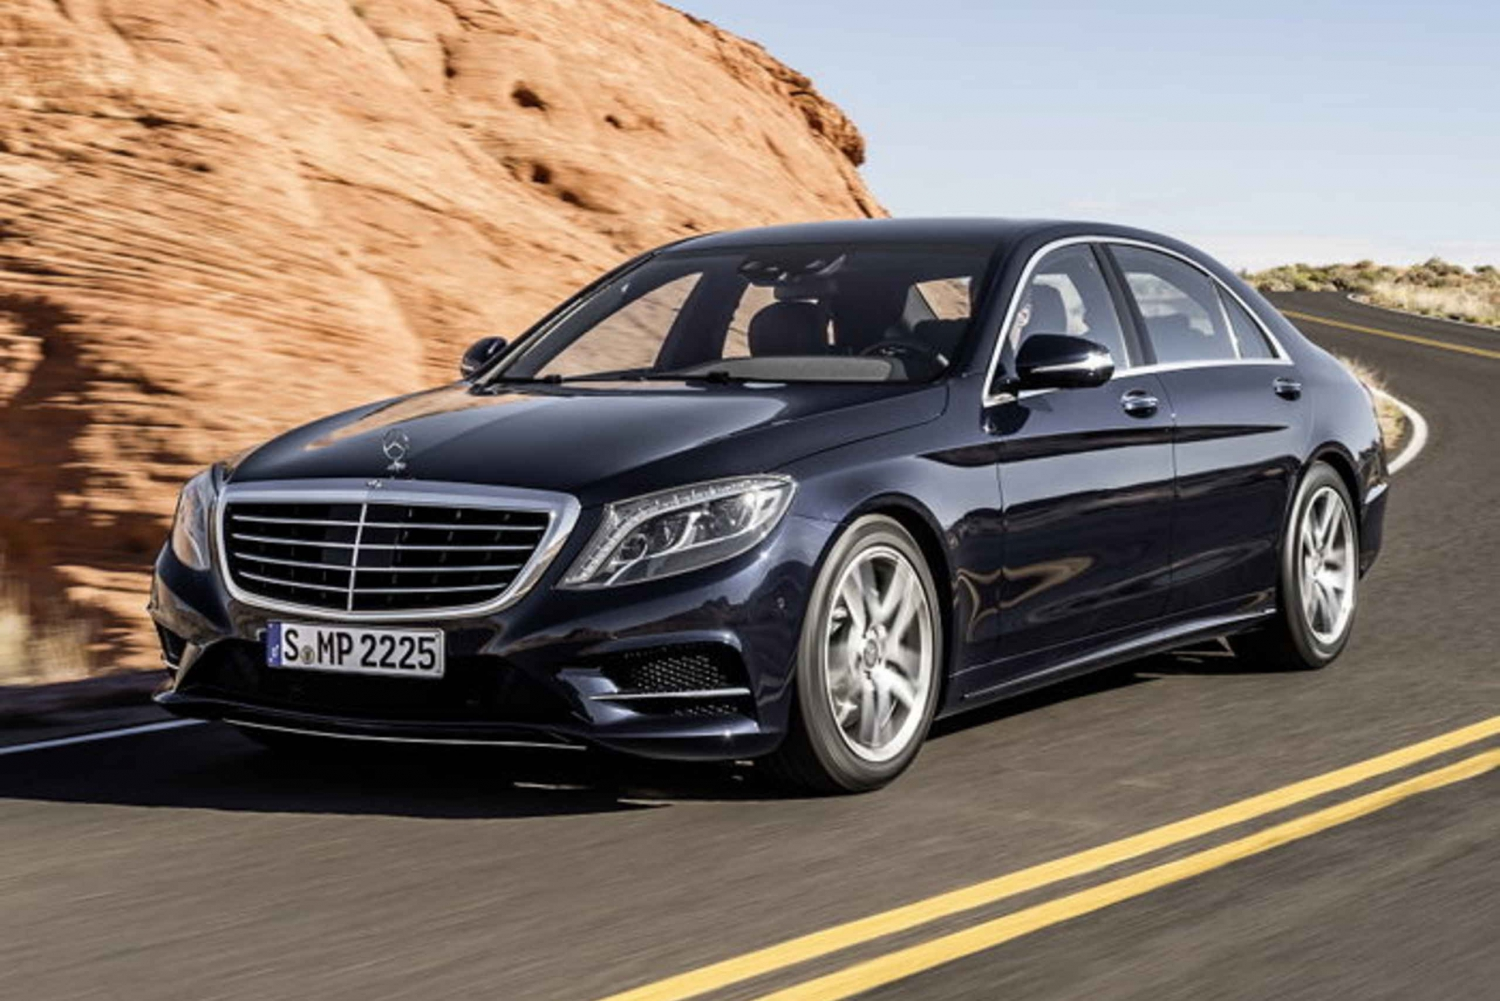 Madrid 1-Way Luxury Transfer between Airport and Hotels